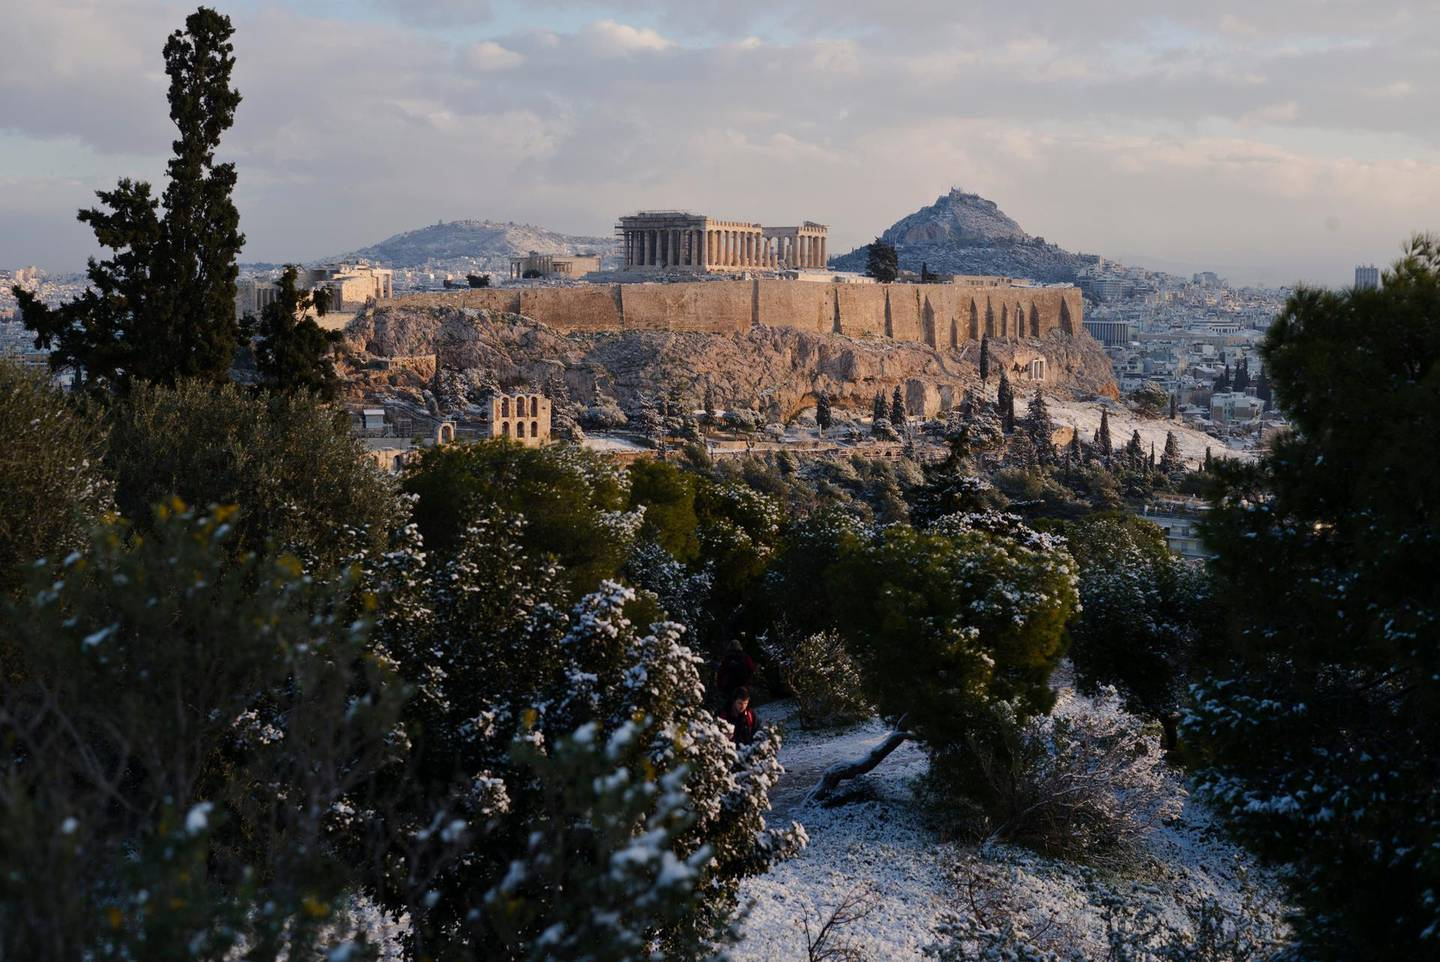 A man walks at Filopappos hill as at the background is seen the ancient Acropolis hill with the 500BC Parthenon temple, after a snowfall in Athens , on Tuesday, Jan. 8, 2019. (AP Photo/Petros Giannakouris)